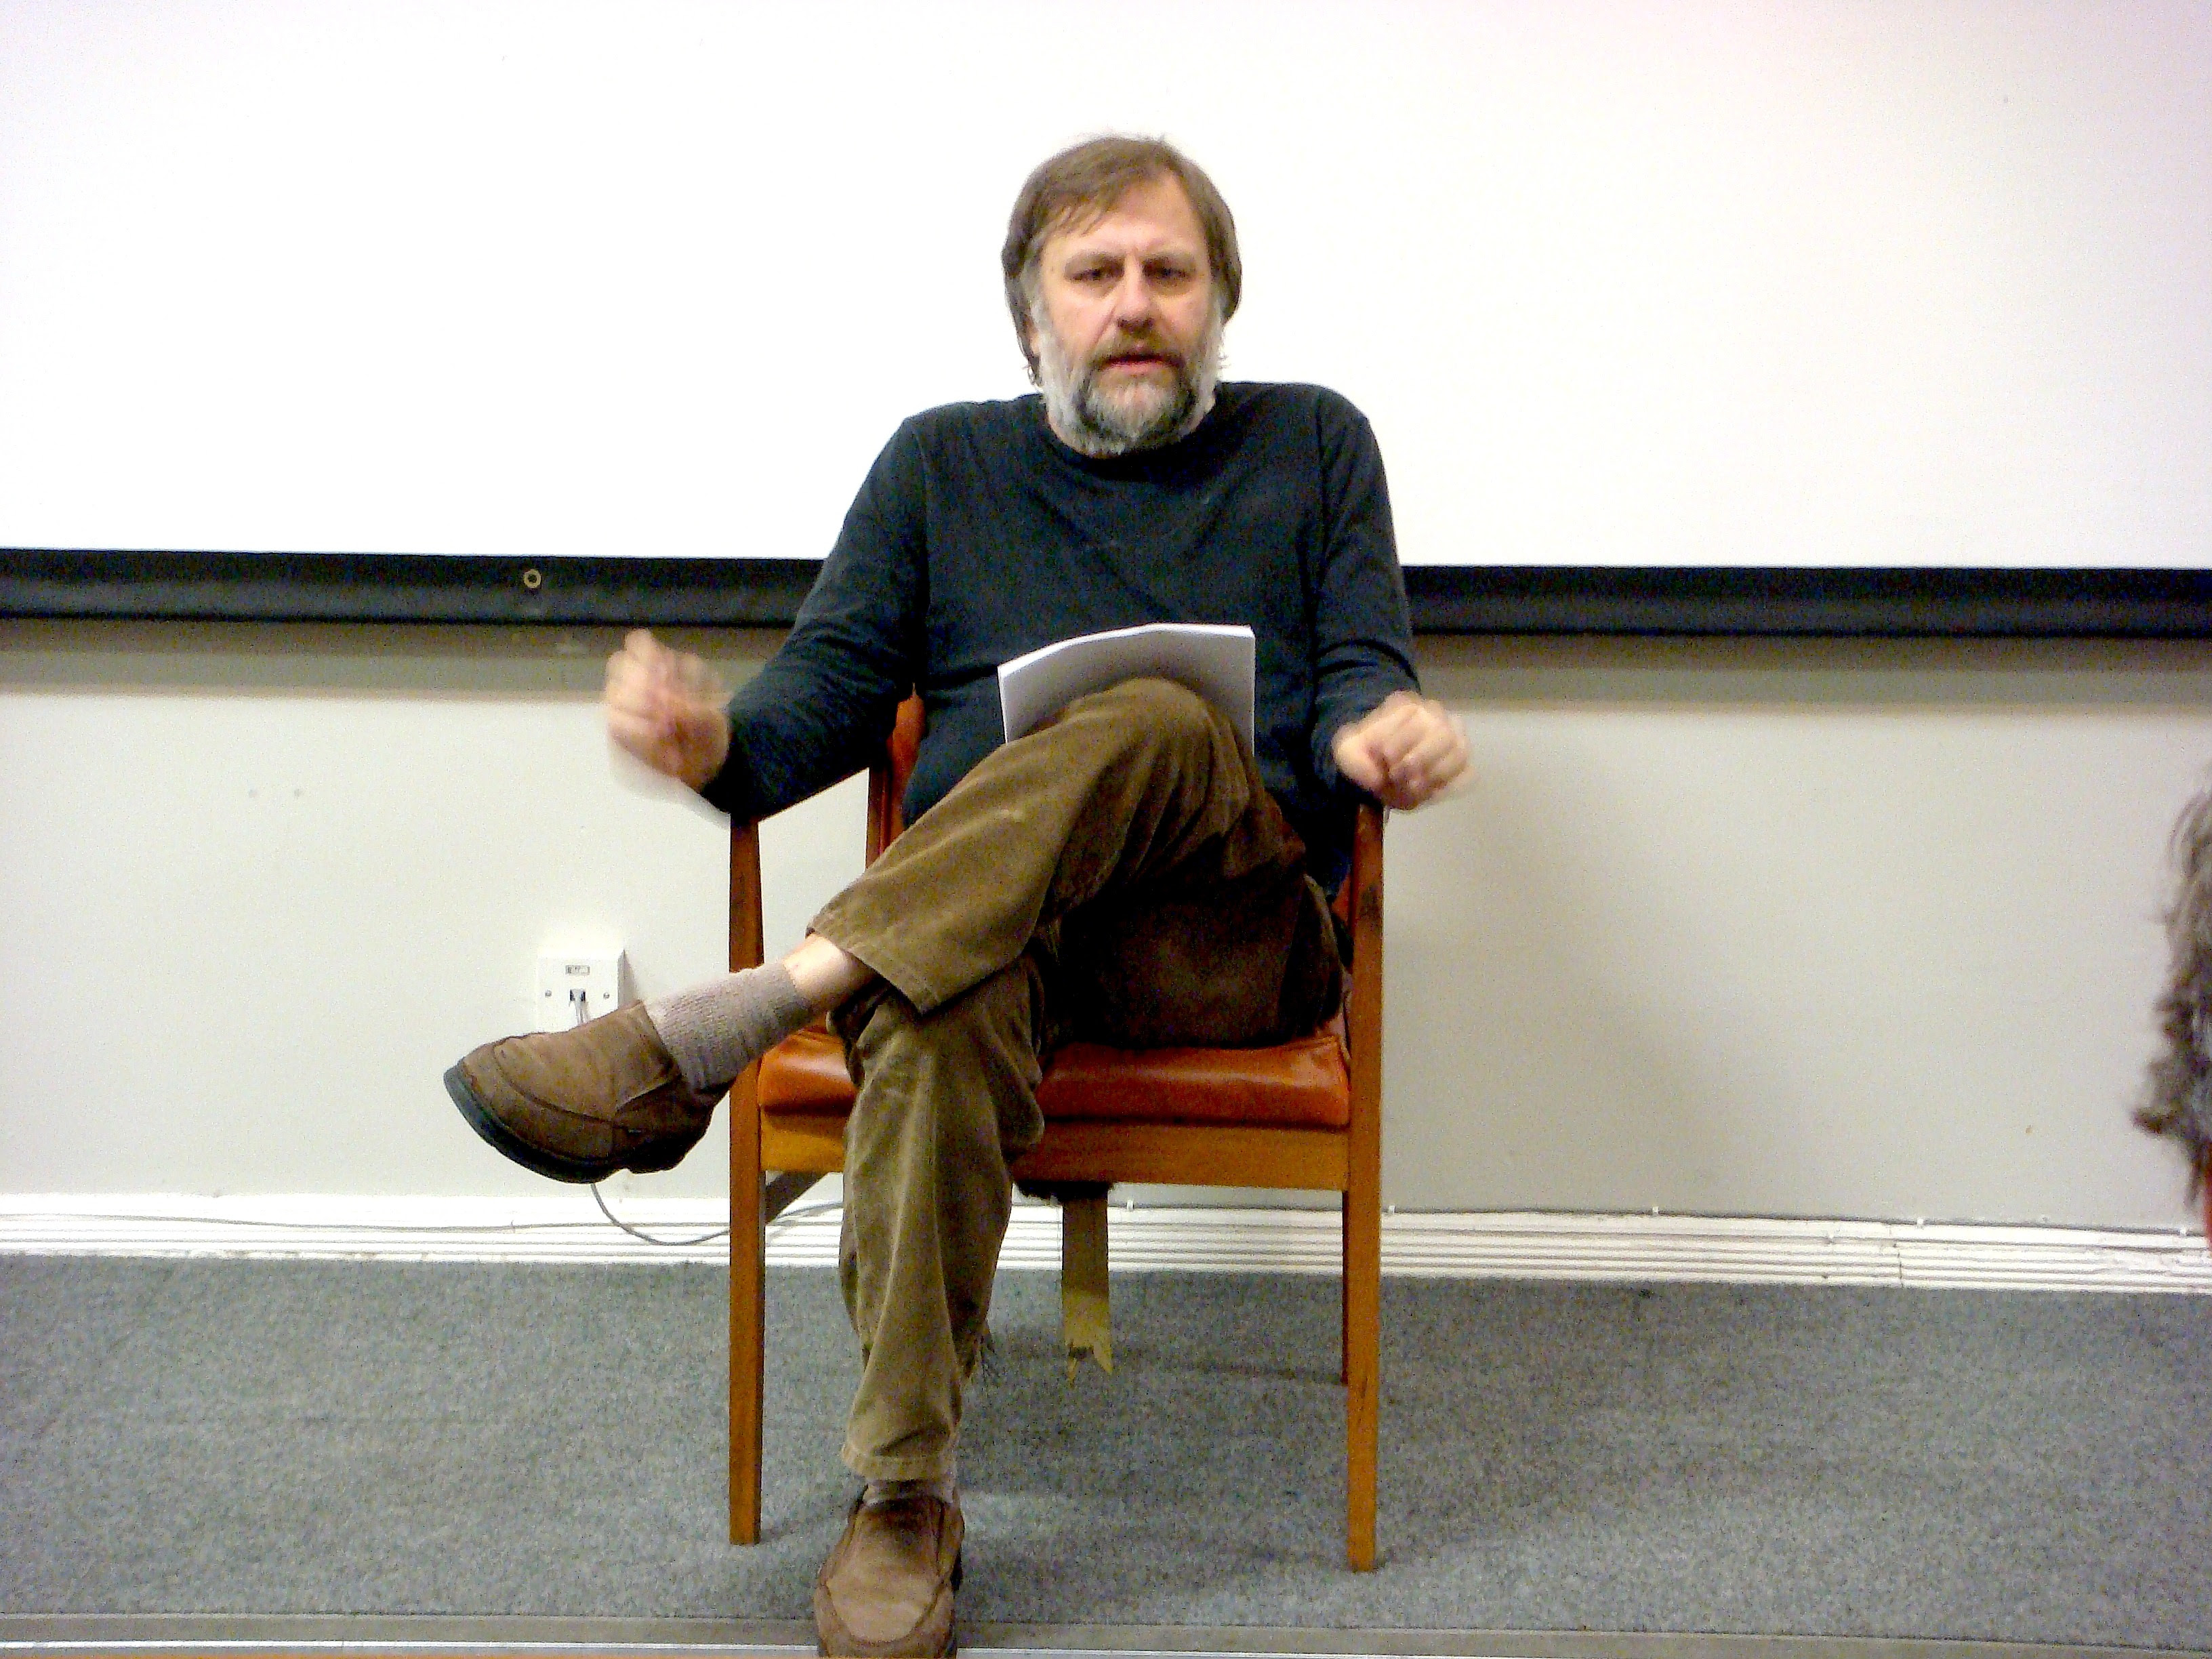 http://upload.wikimedia.org/wikipedia/commons/a/ac/Slavoj_Zizek_in_Liverpool.jpg